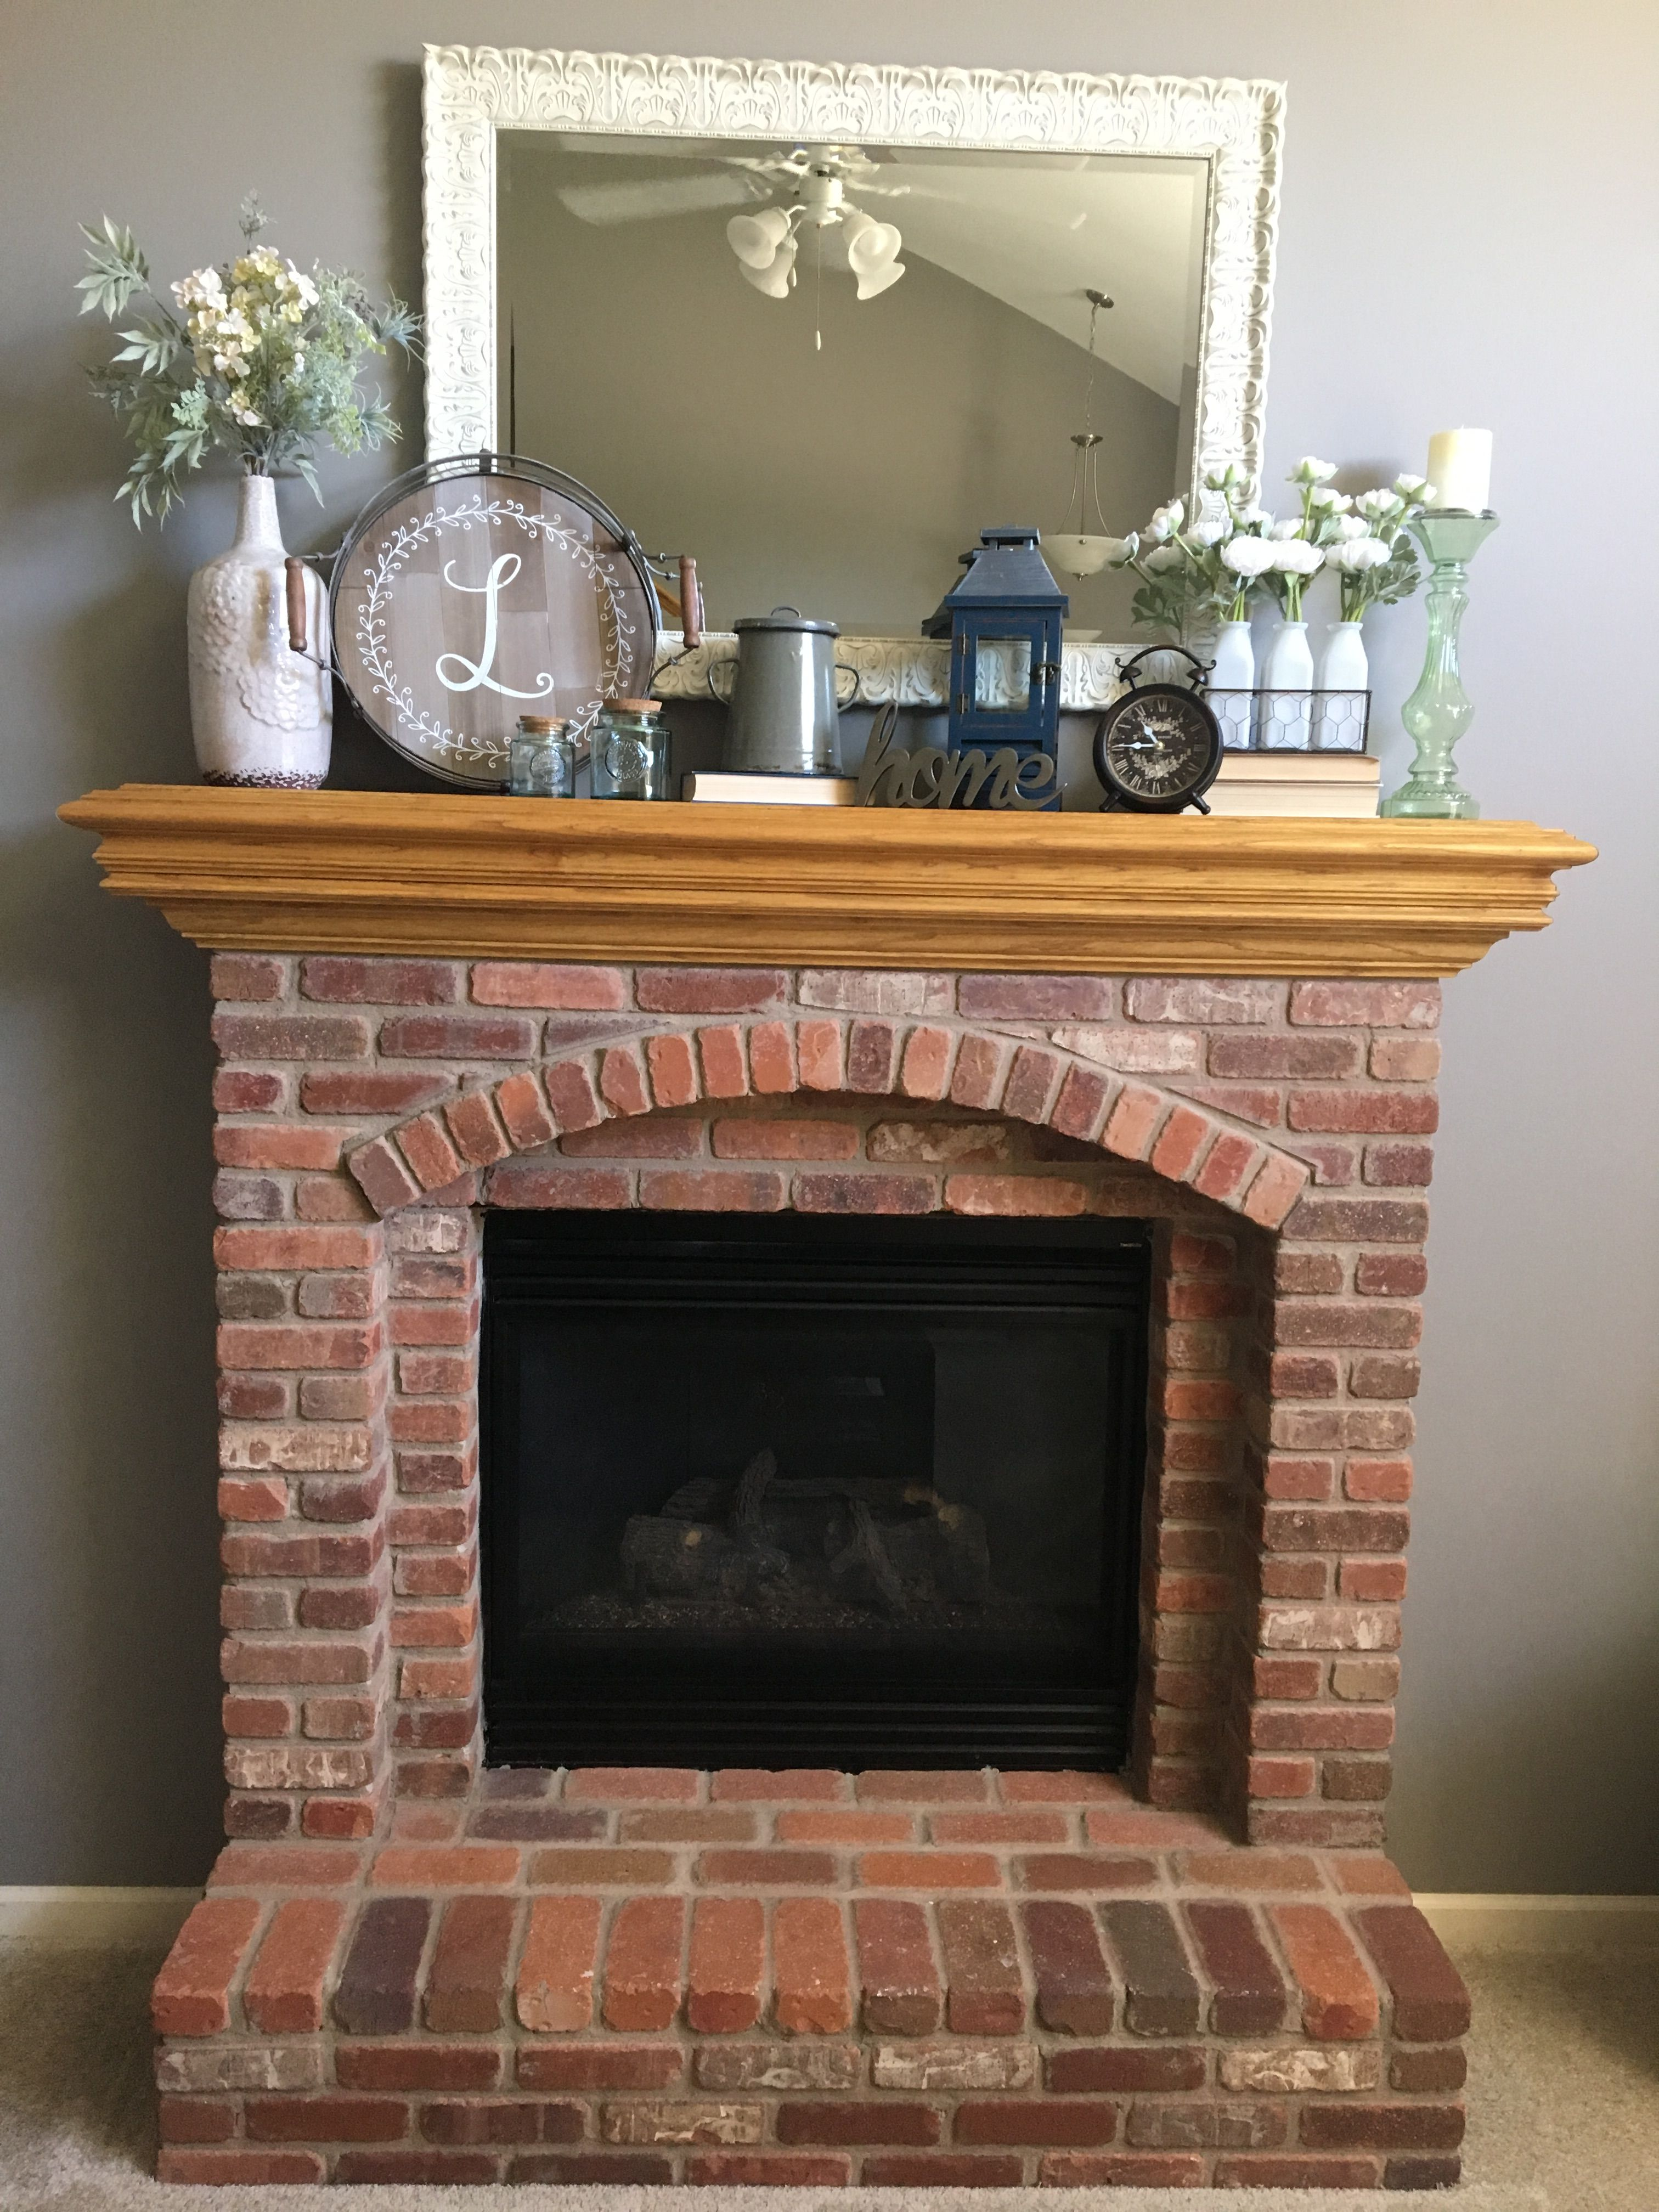 Farmhouse chic fireplace mantel decor for the home pinterest